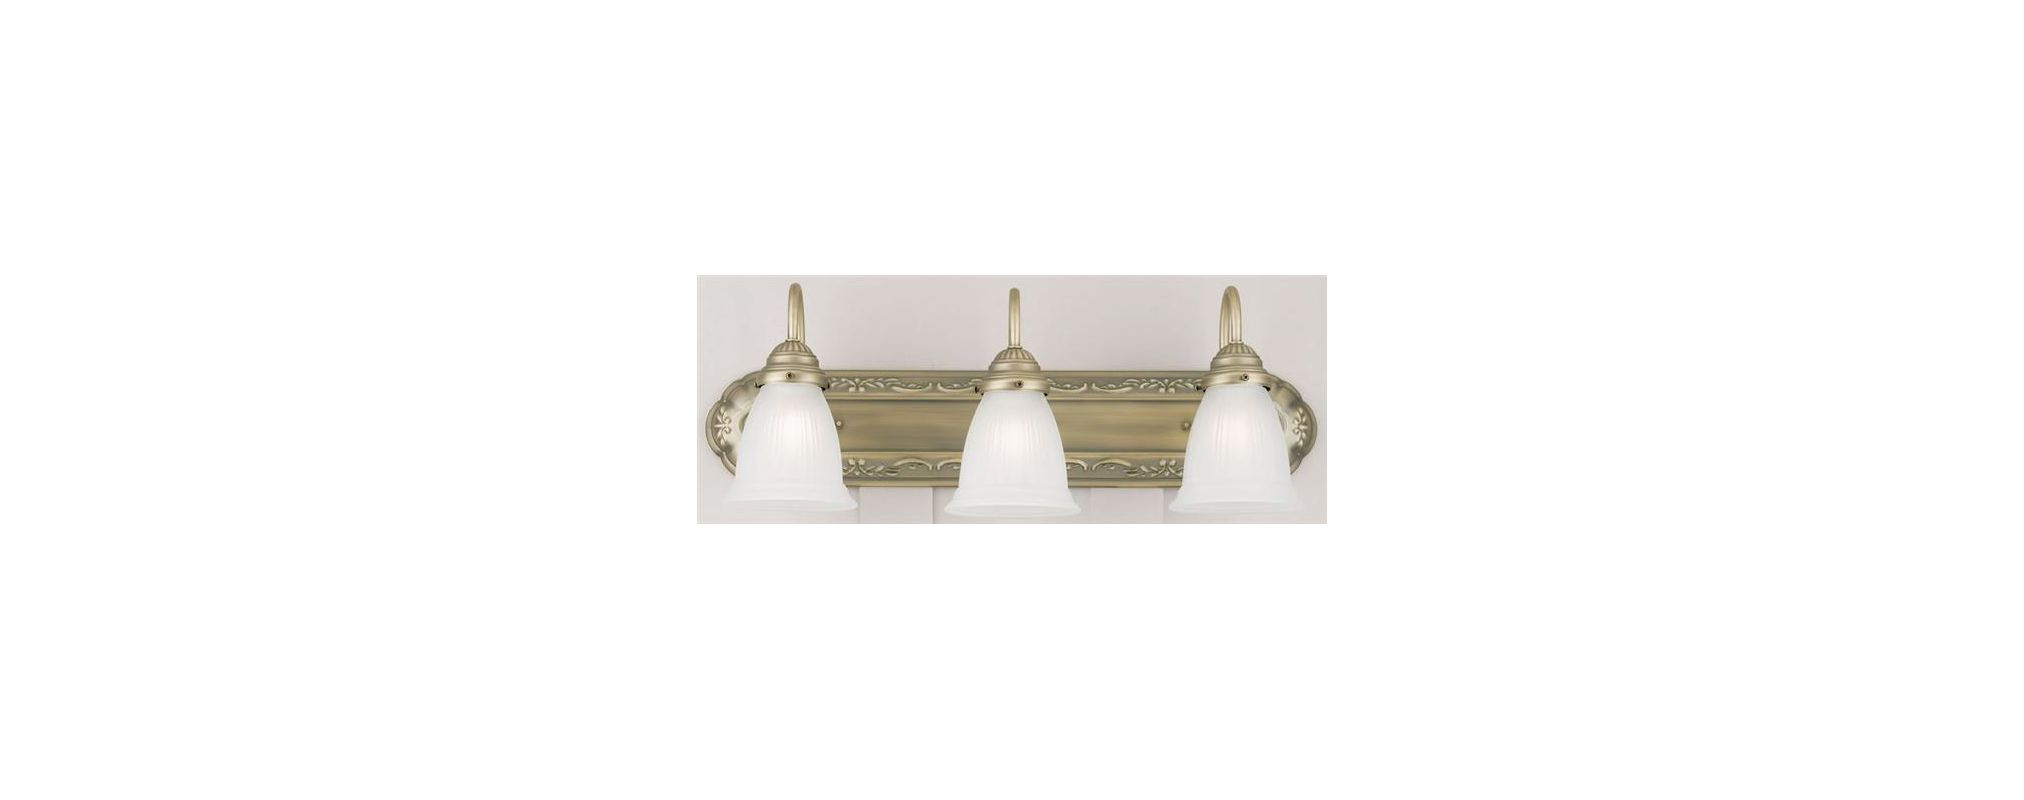 "Westinghouse 67513 3 Light 24"" Wide Bathroom Fixture with Frosted"